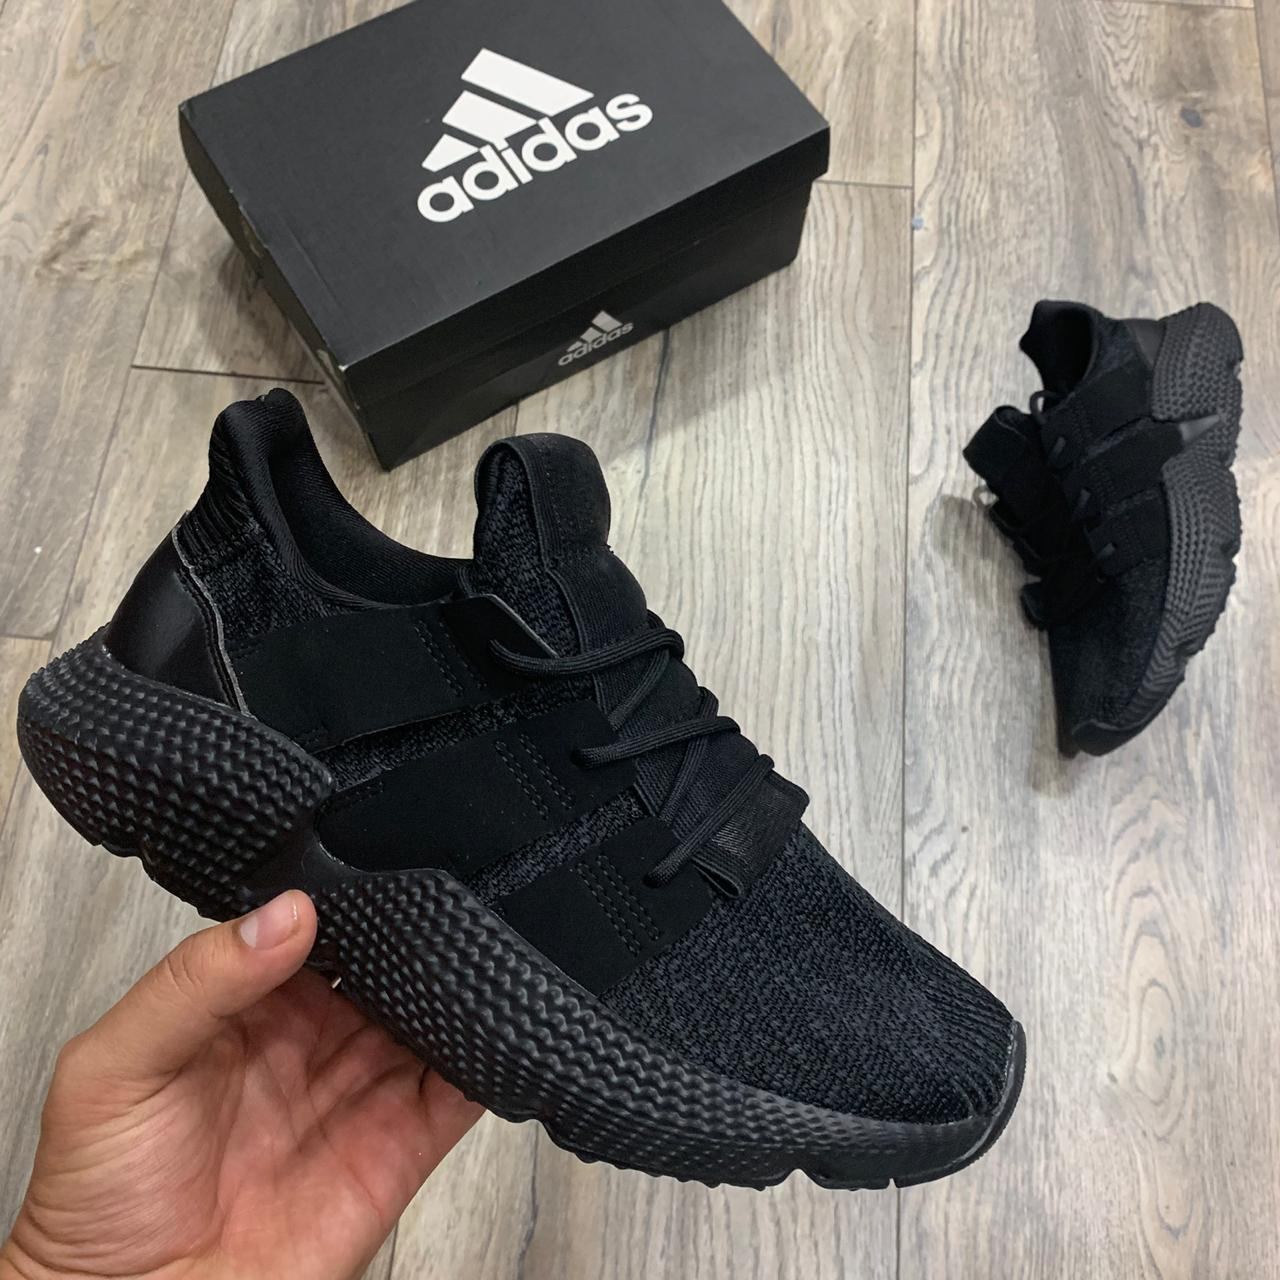 replicas adidas zapatillas